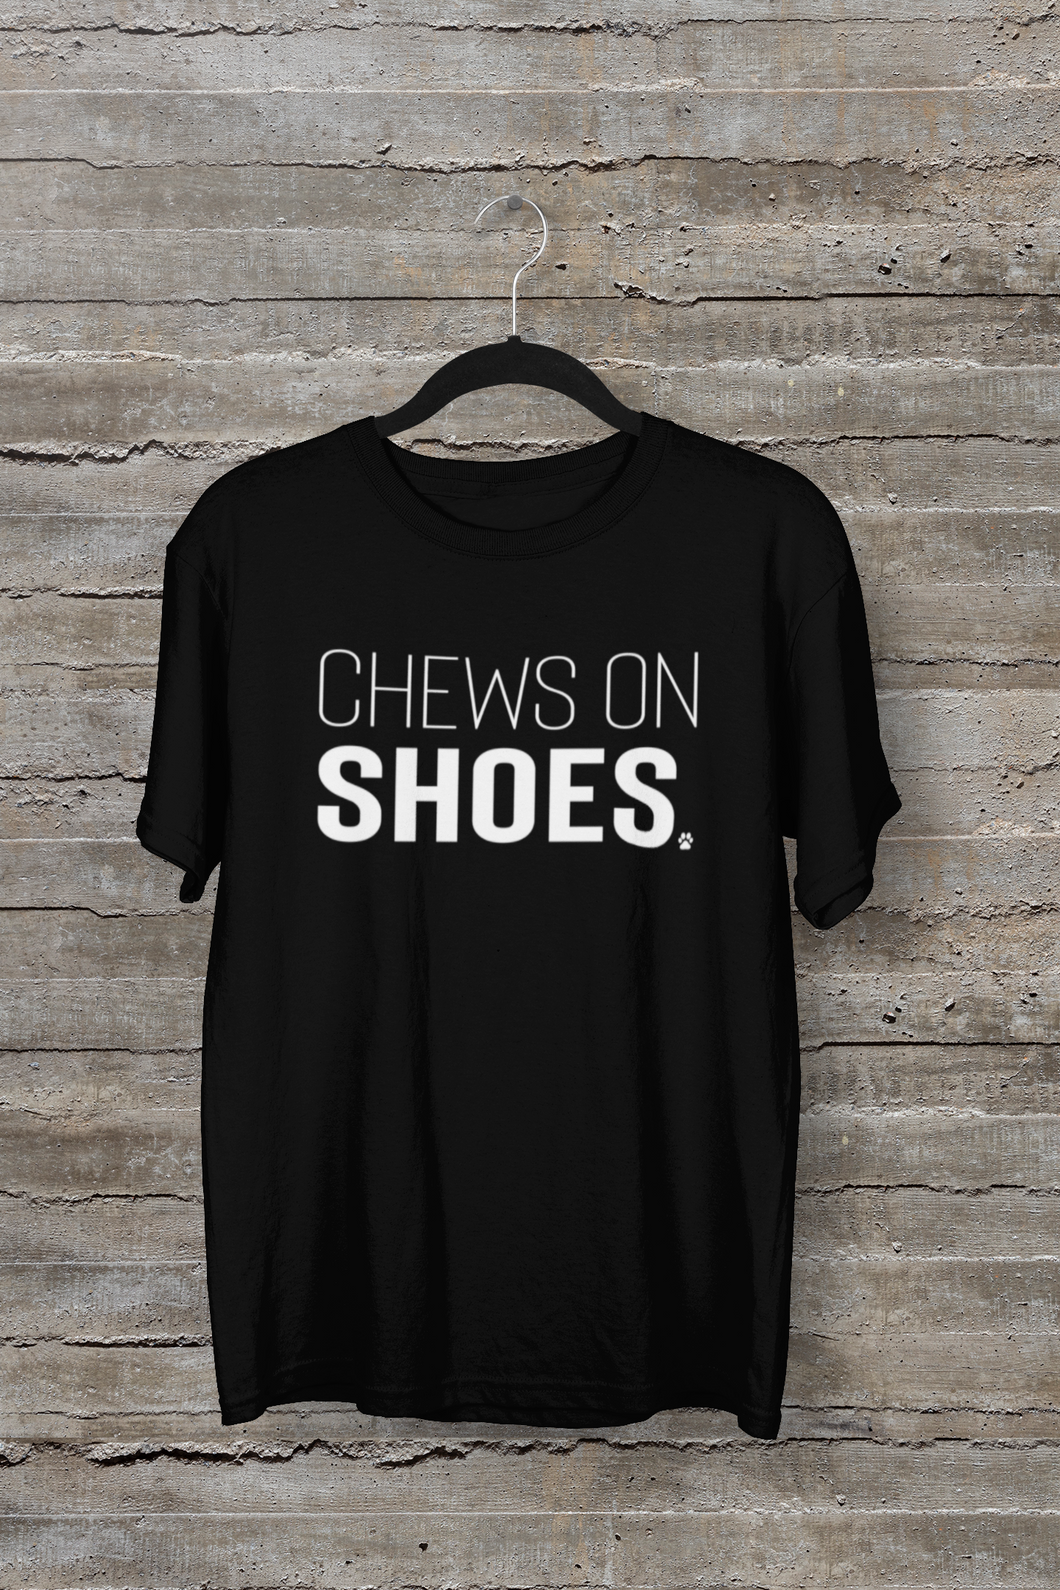 Chews on Shoes Men's/Unisex or Women's T-shirt